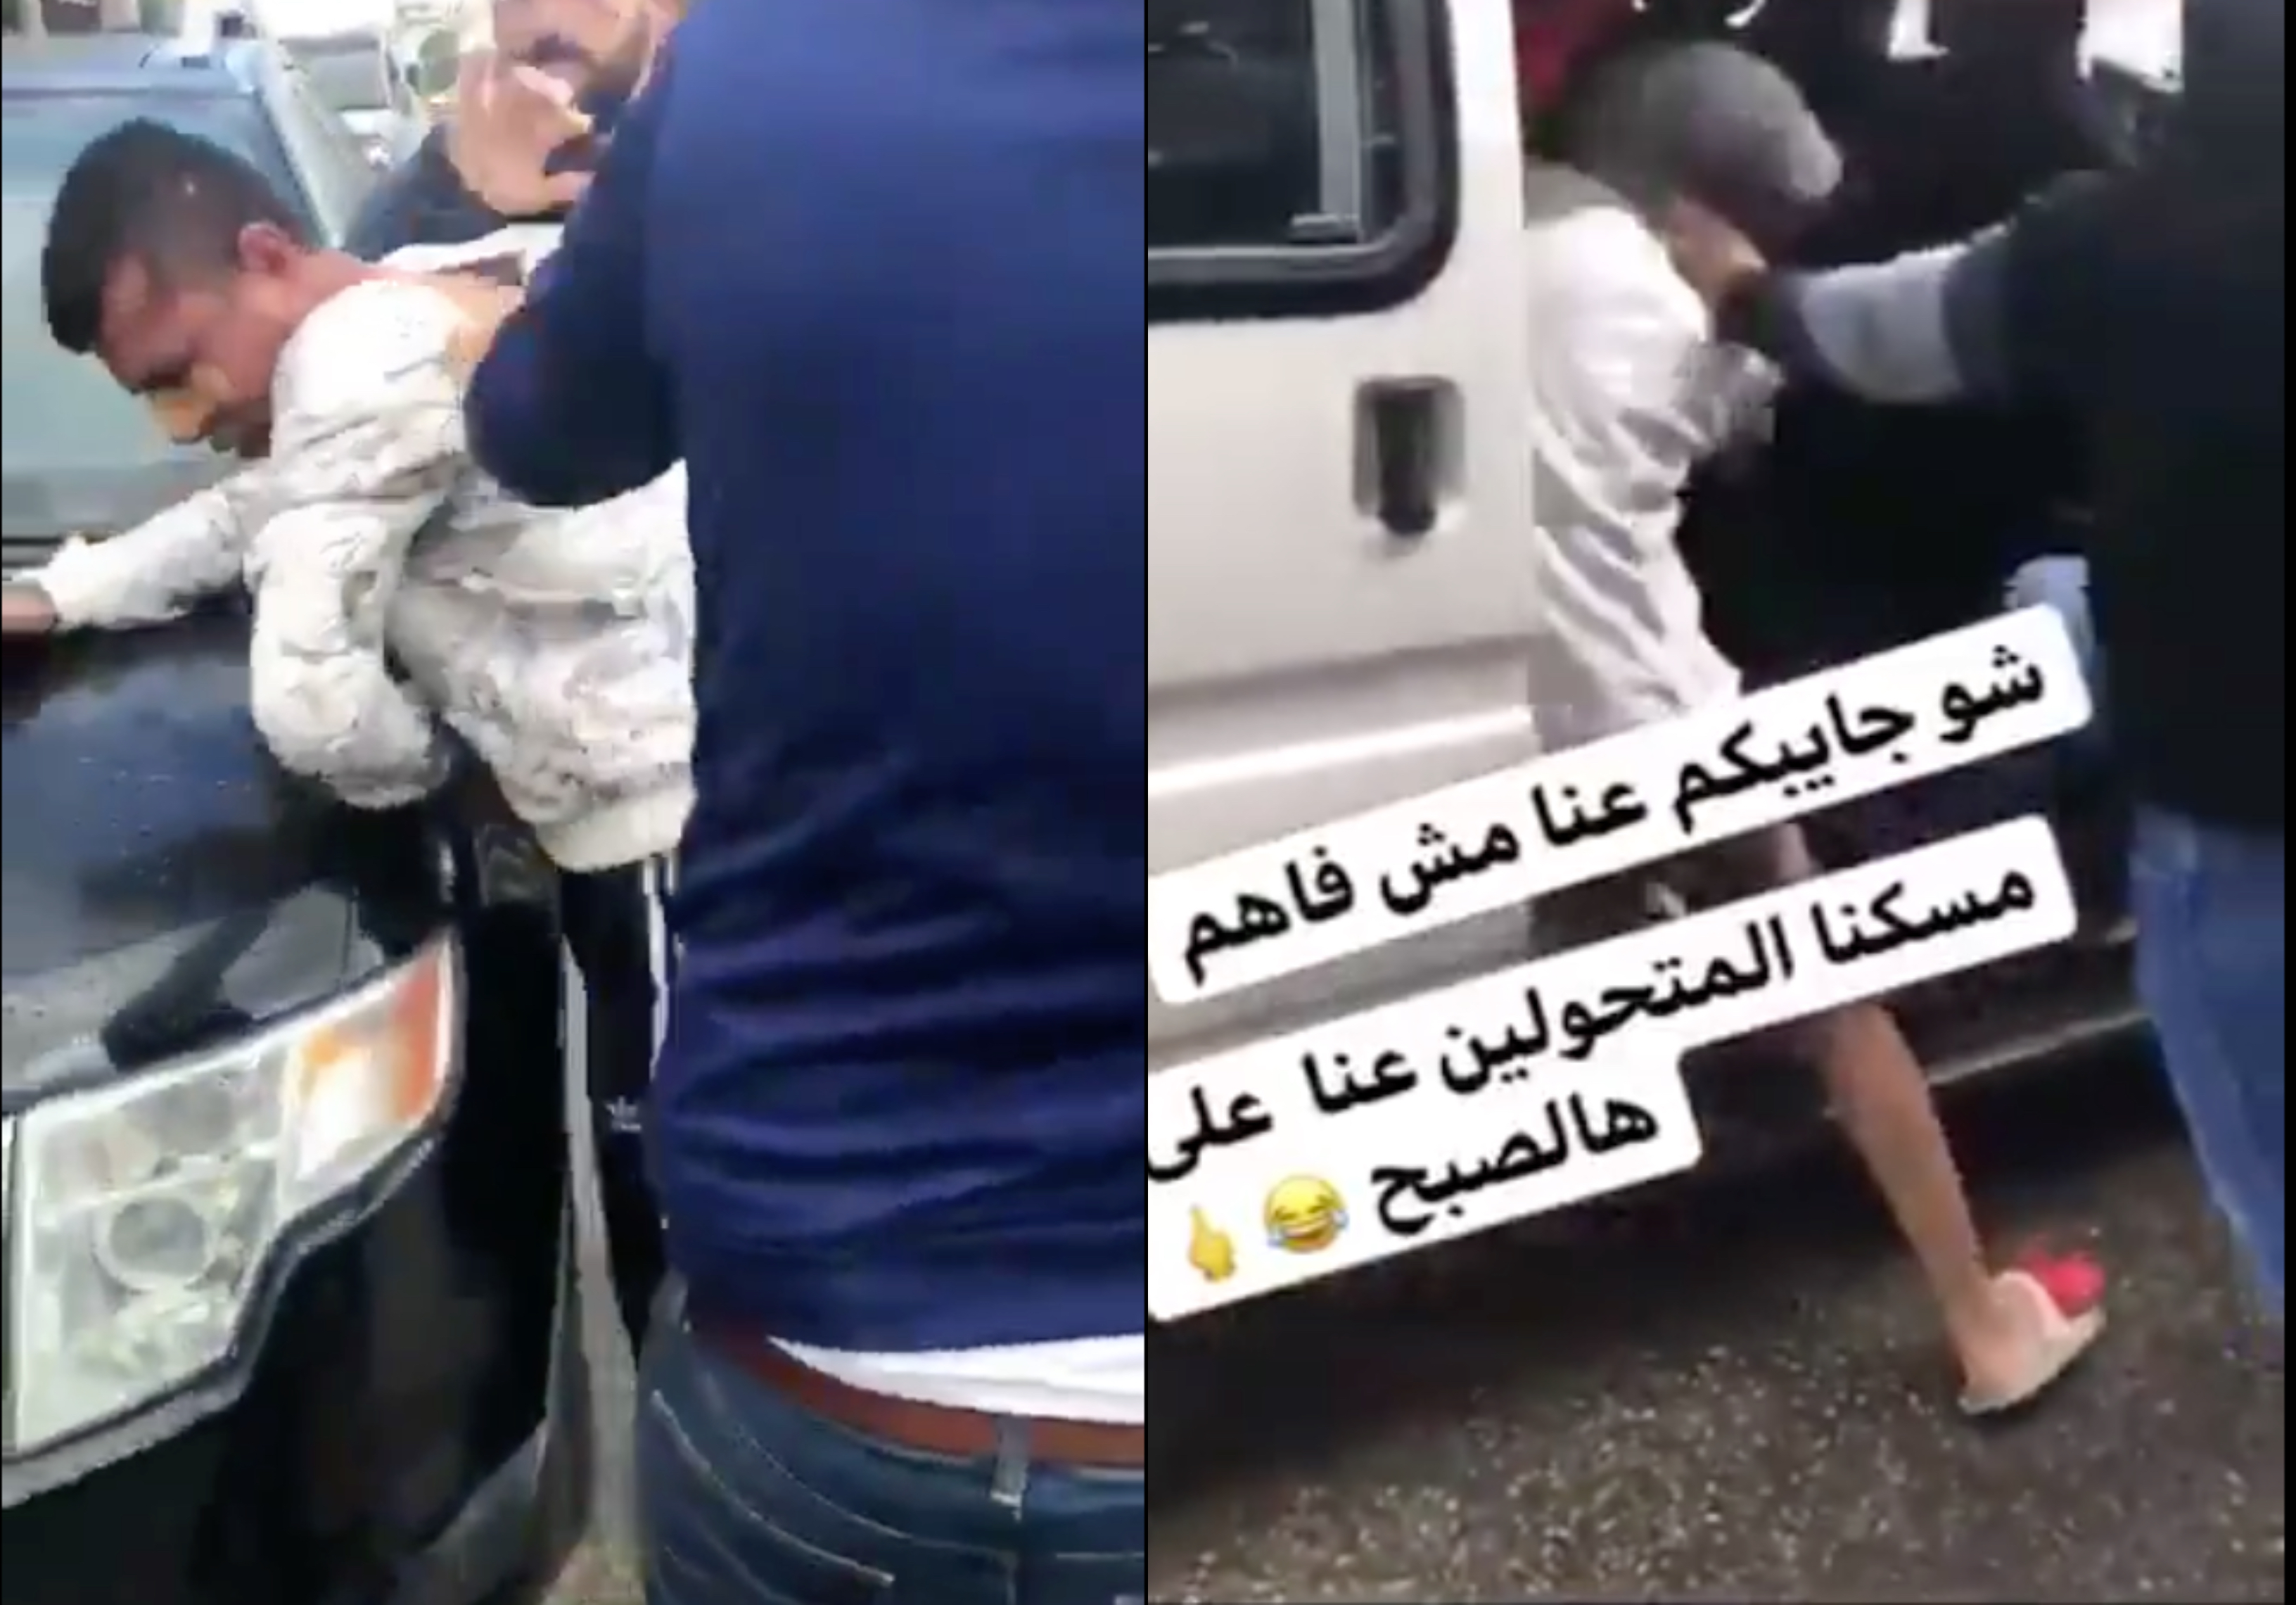 Disturbing footage has shown there shocking moment a gang of men attacked a gay man and a trans woman in Palestine. (Screen captures via Twitter)